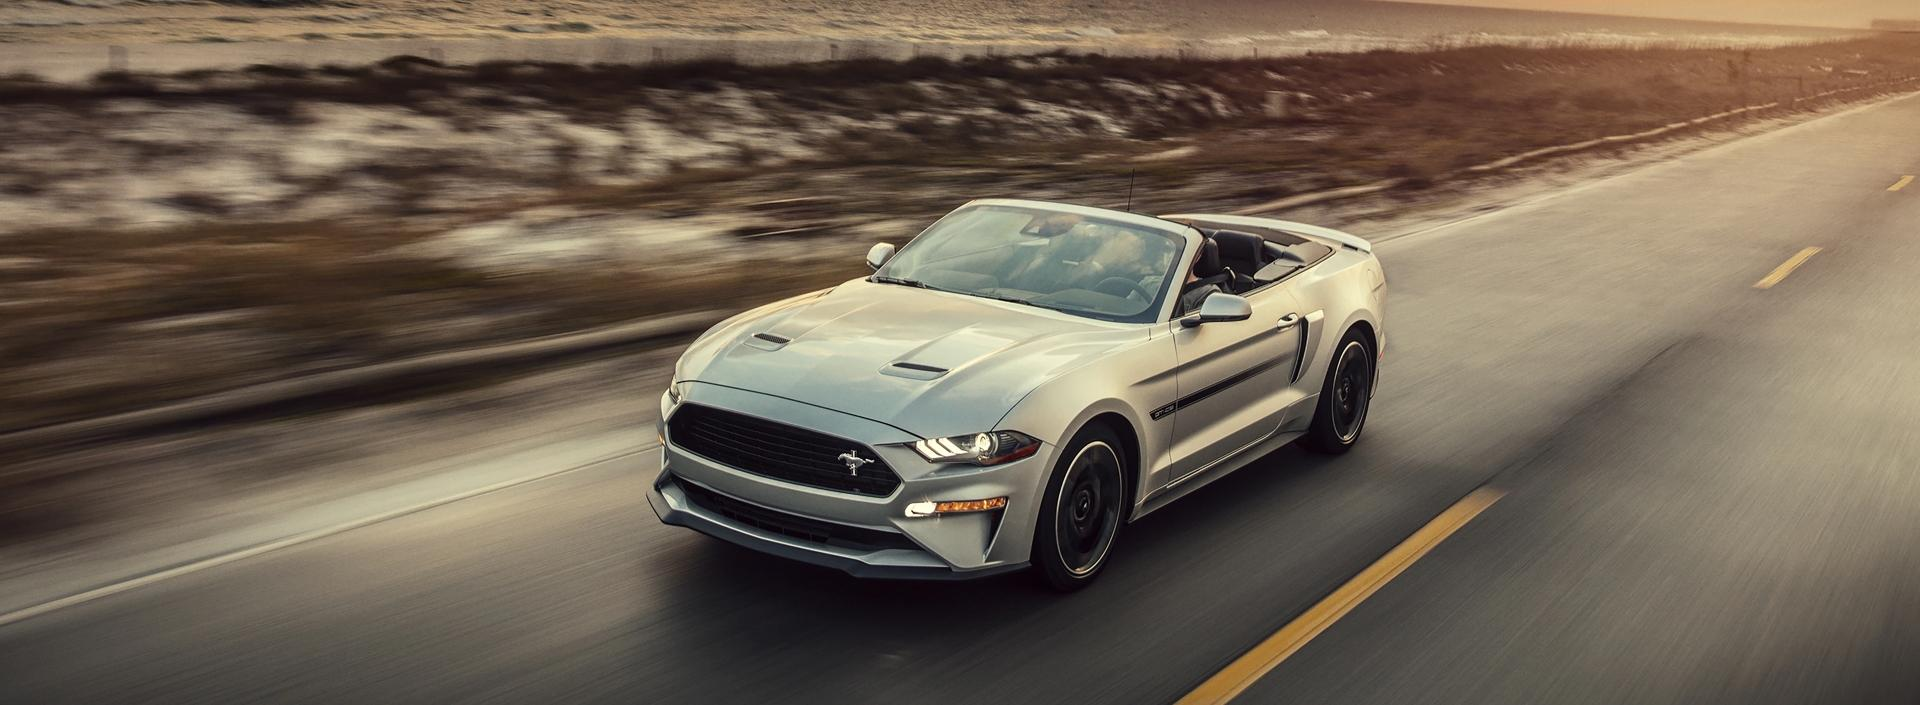 2021 Ford Mustang | Southern California Ford Dealers